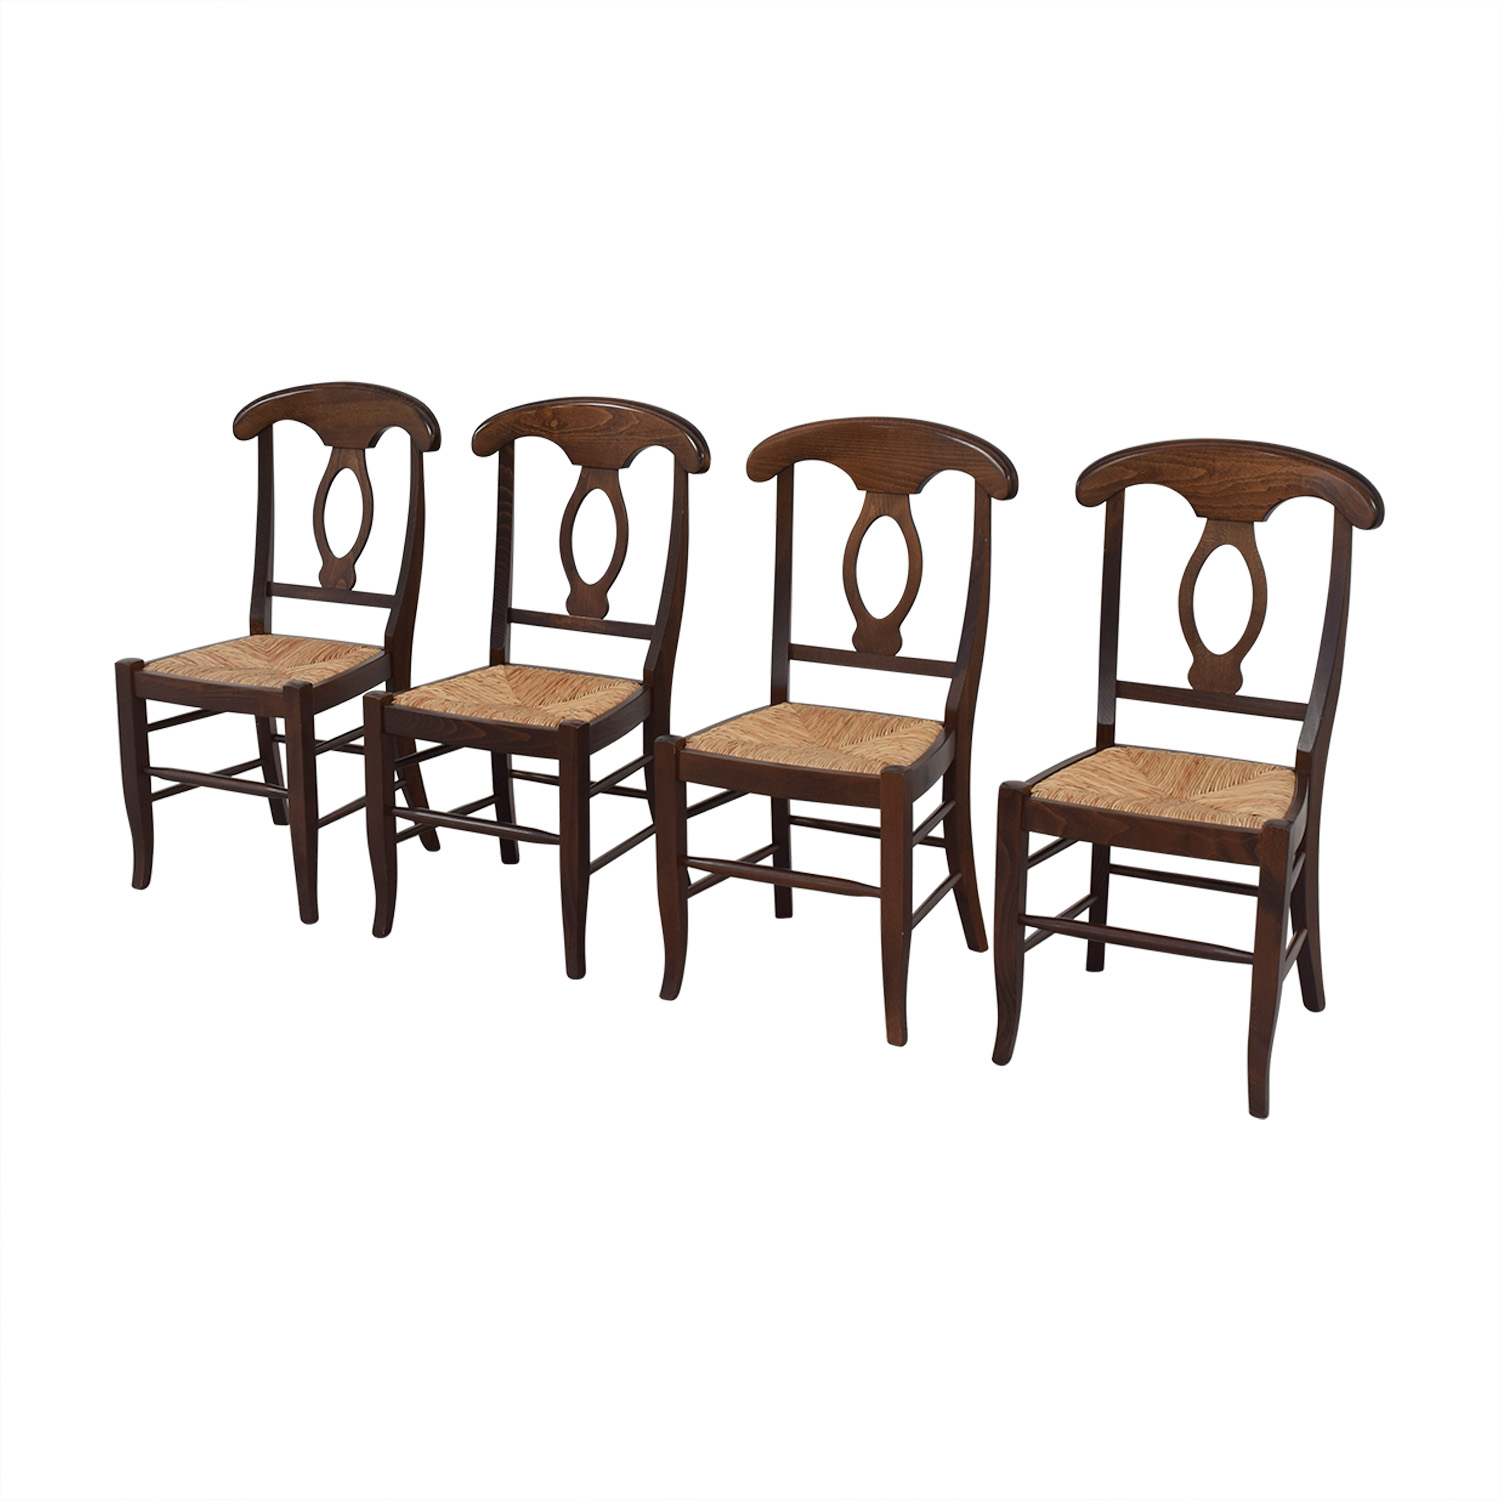 Pottery Barn Pottery Barn Napoleon Dining Chairs price